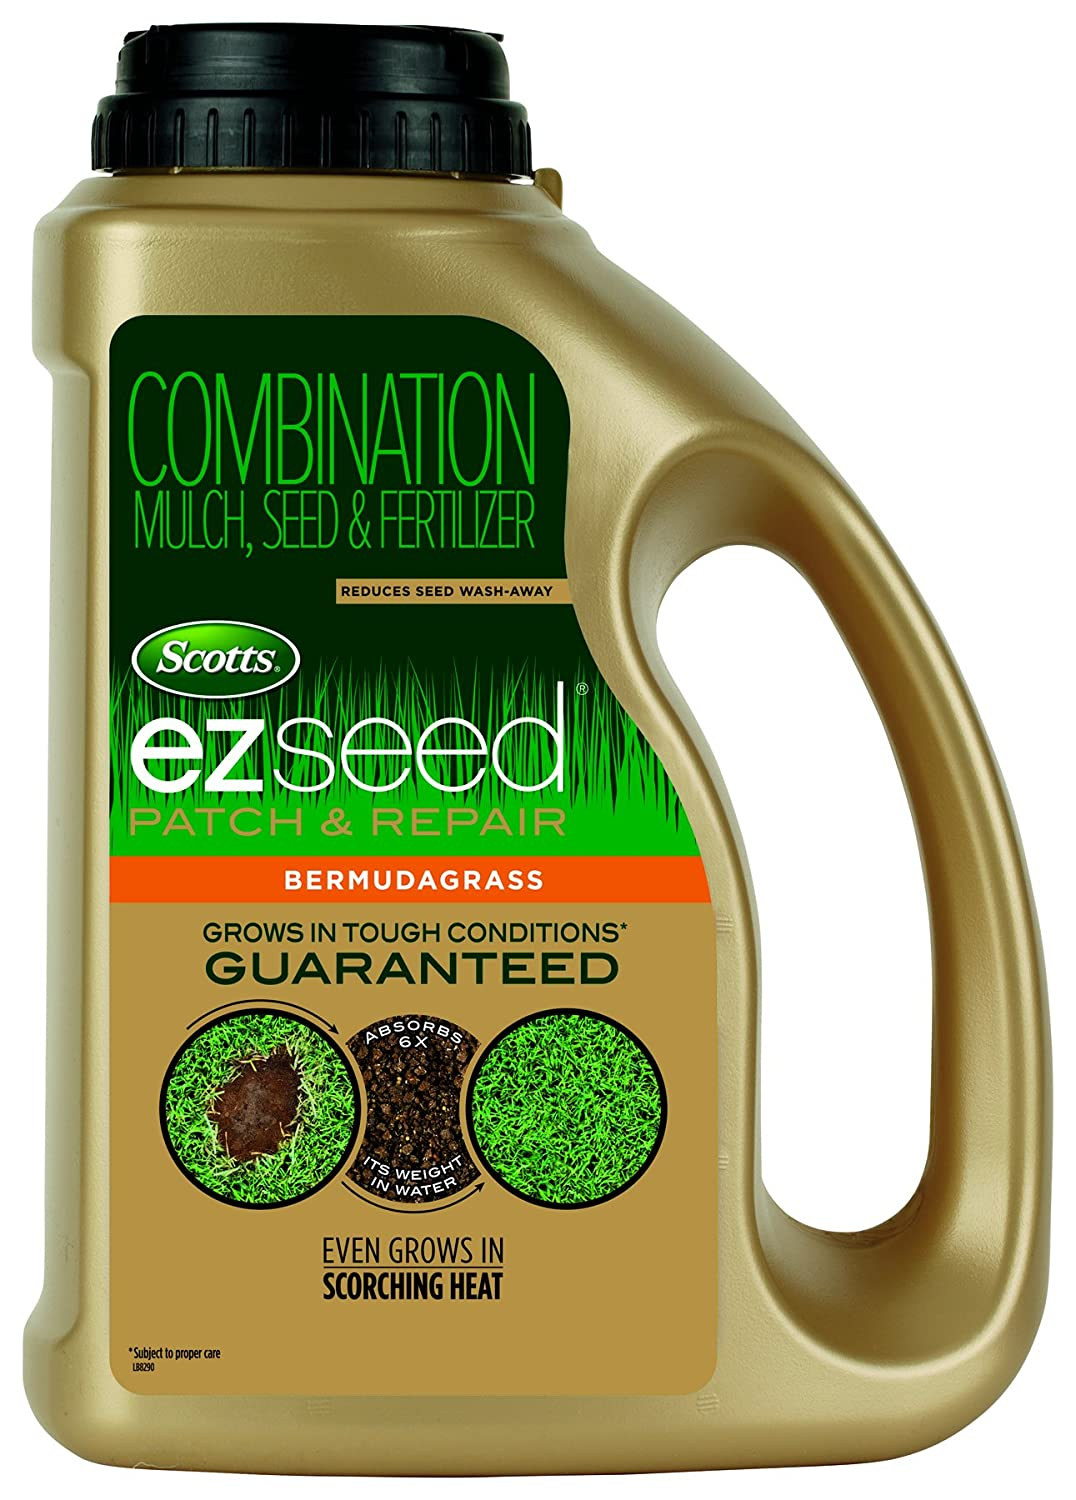 Scotts EZ Seed Bermudagrass - 3.75 lb., Combination Mulch, Seed and Fertilizer, For Tough Conditions Like Scorching Heat and Dry Areas, Grows on Slopes and in High Traffic Areas